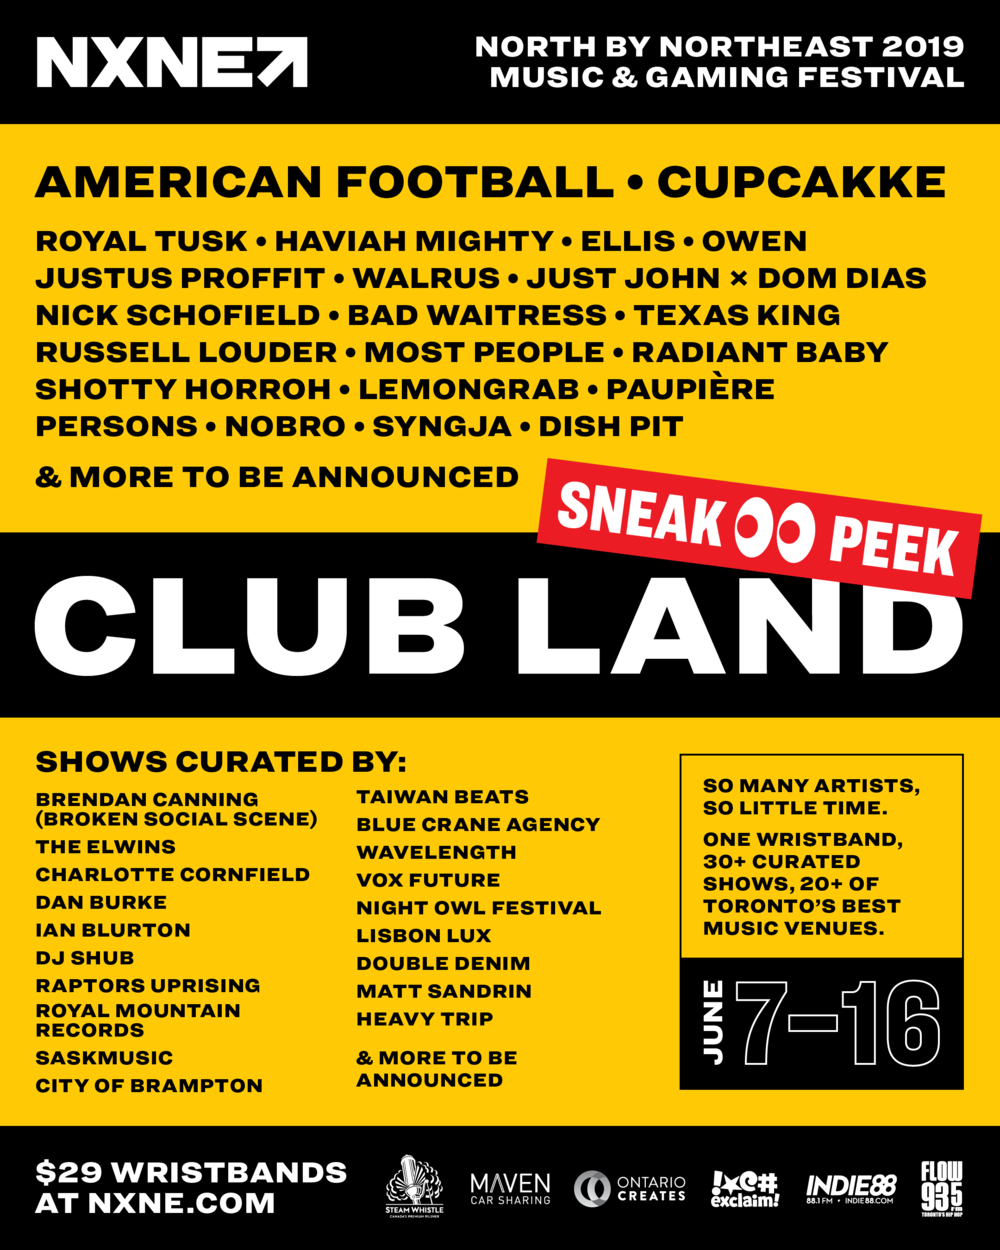 NXNE Club Land Sneak Peek